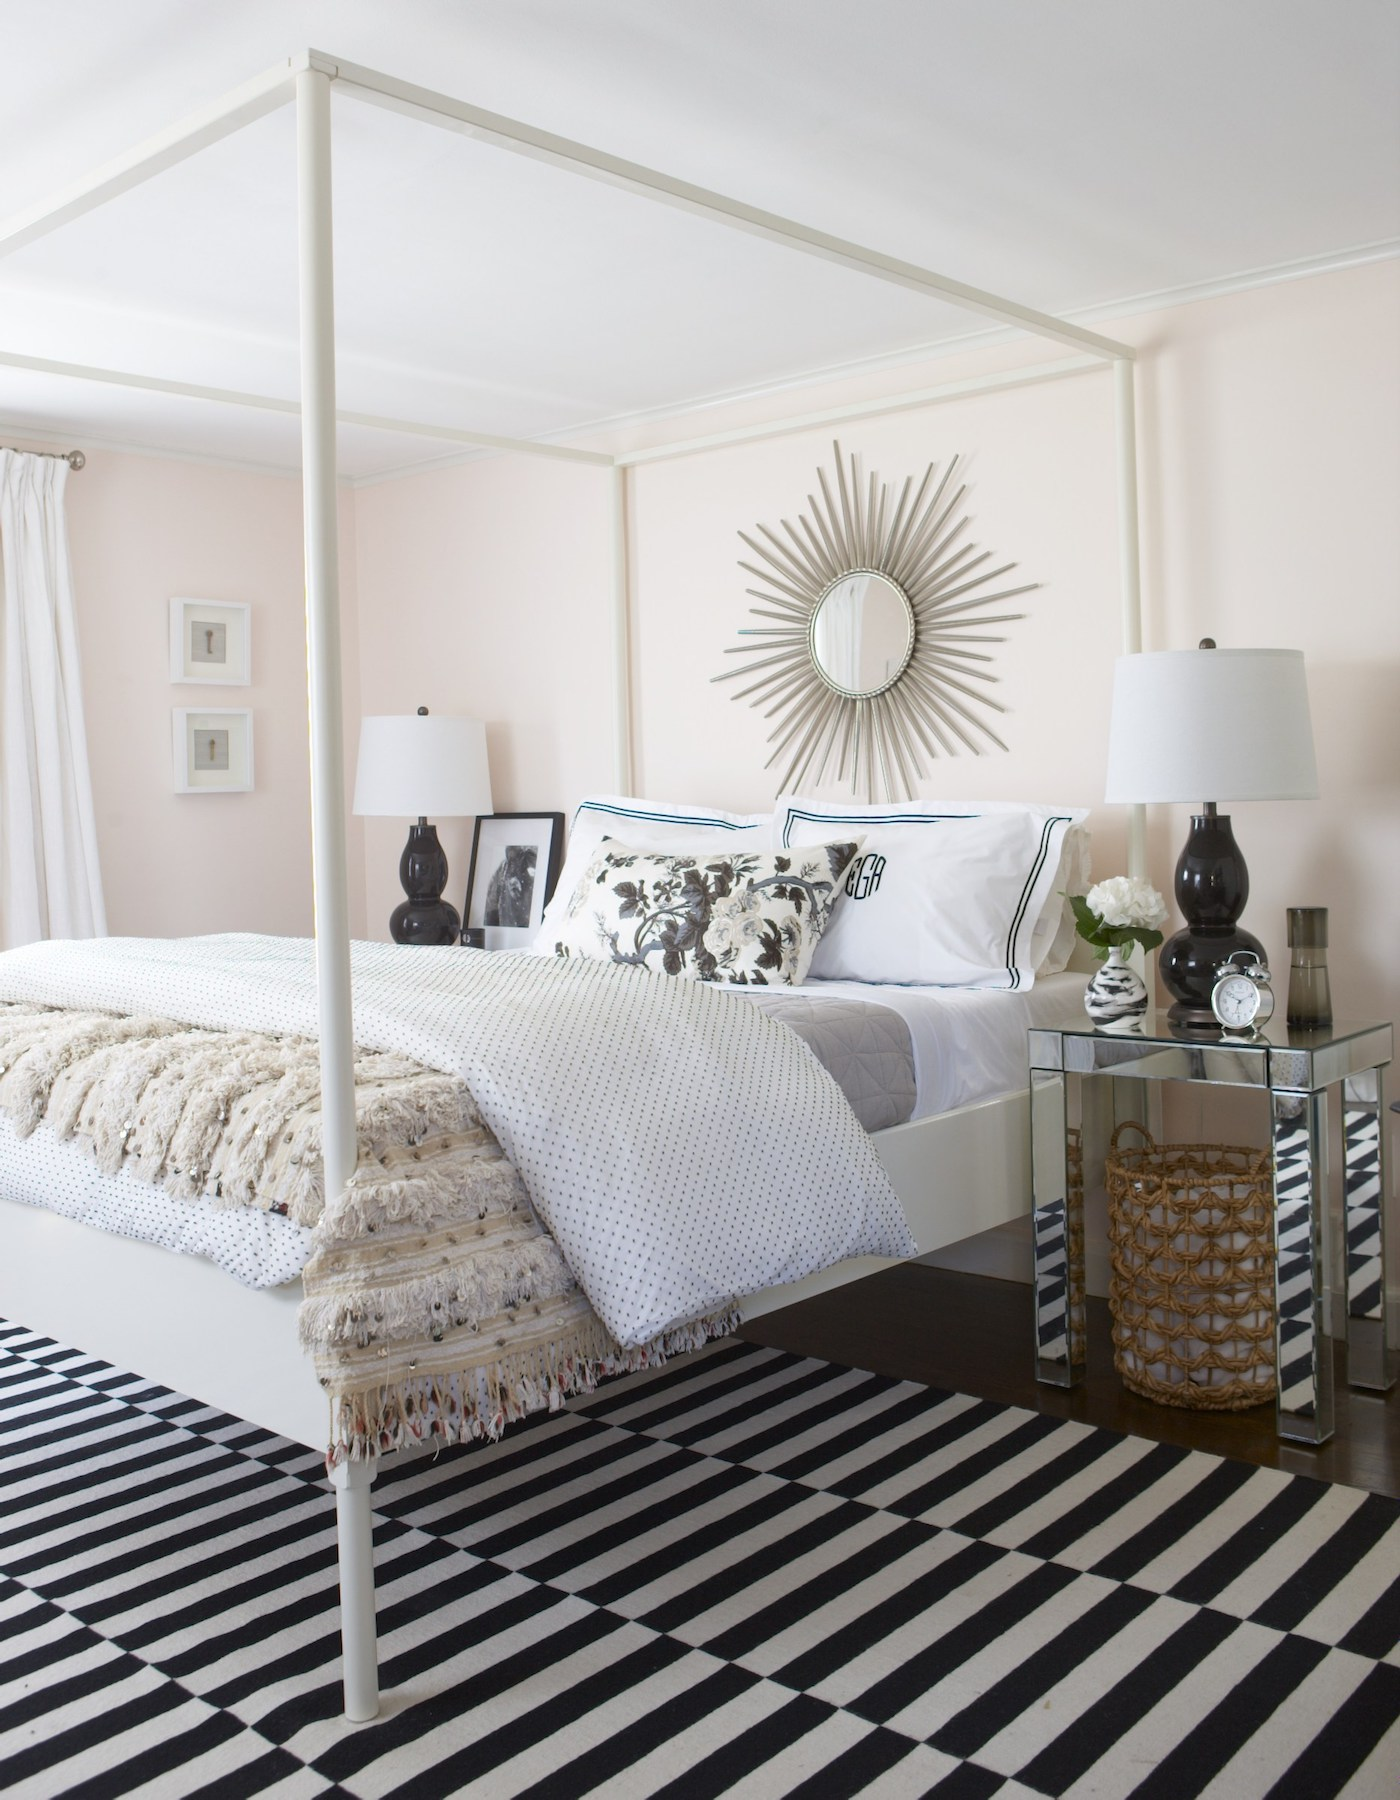 Bedroom painted in Blanched Coral, by Benjamin Moore